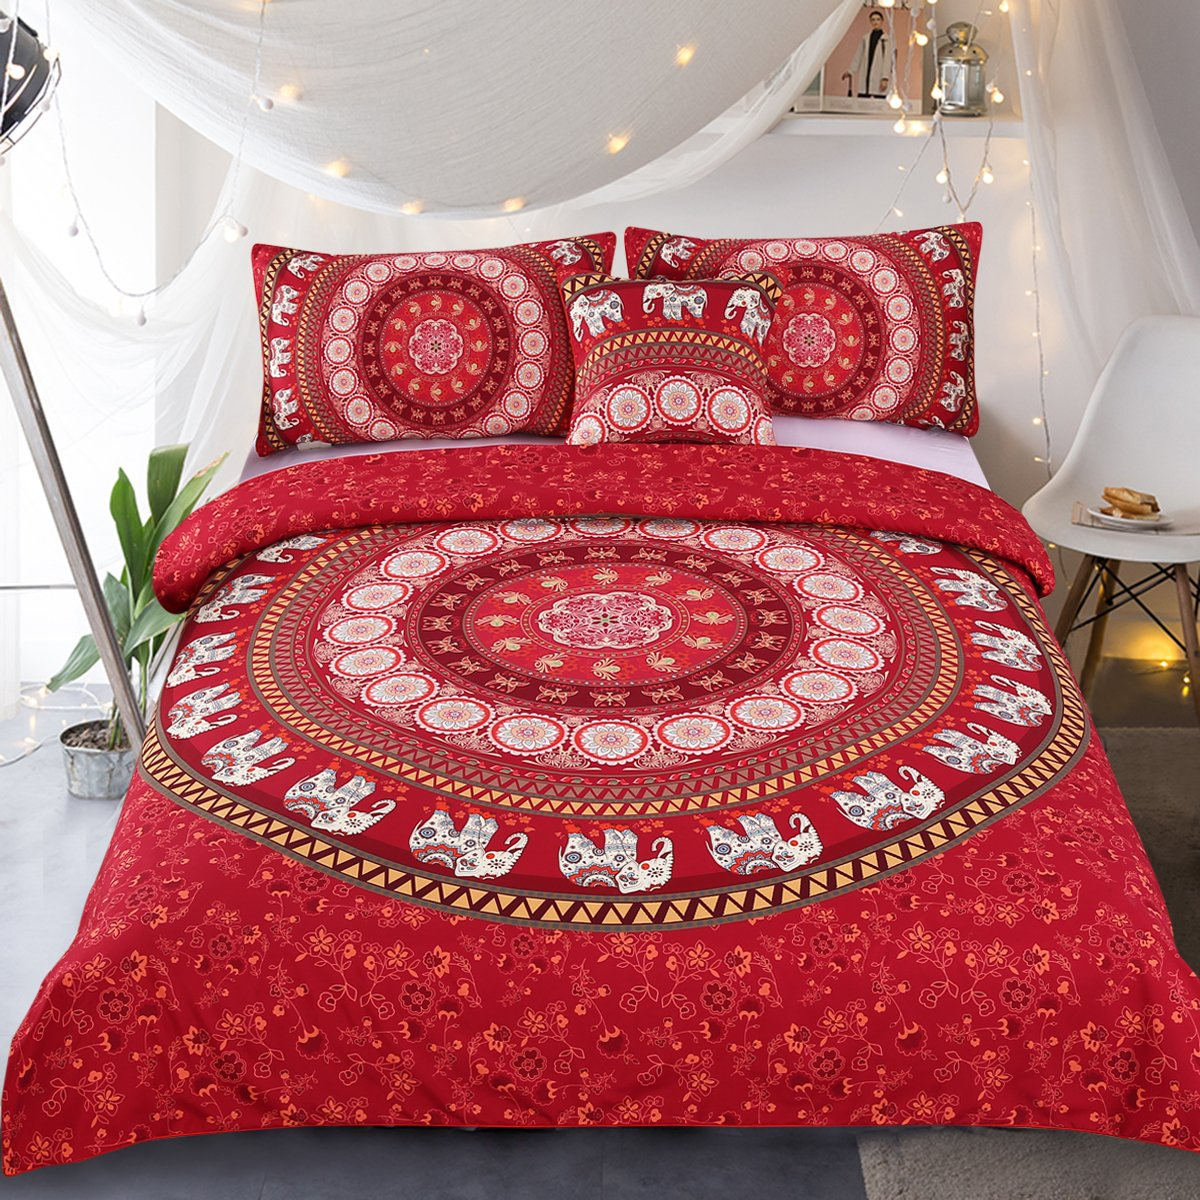 Elephant Mandala Duvet Cover Red Bohemian Bedding Hippie Bed Set Elephant Tapestry Bedding - Queen